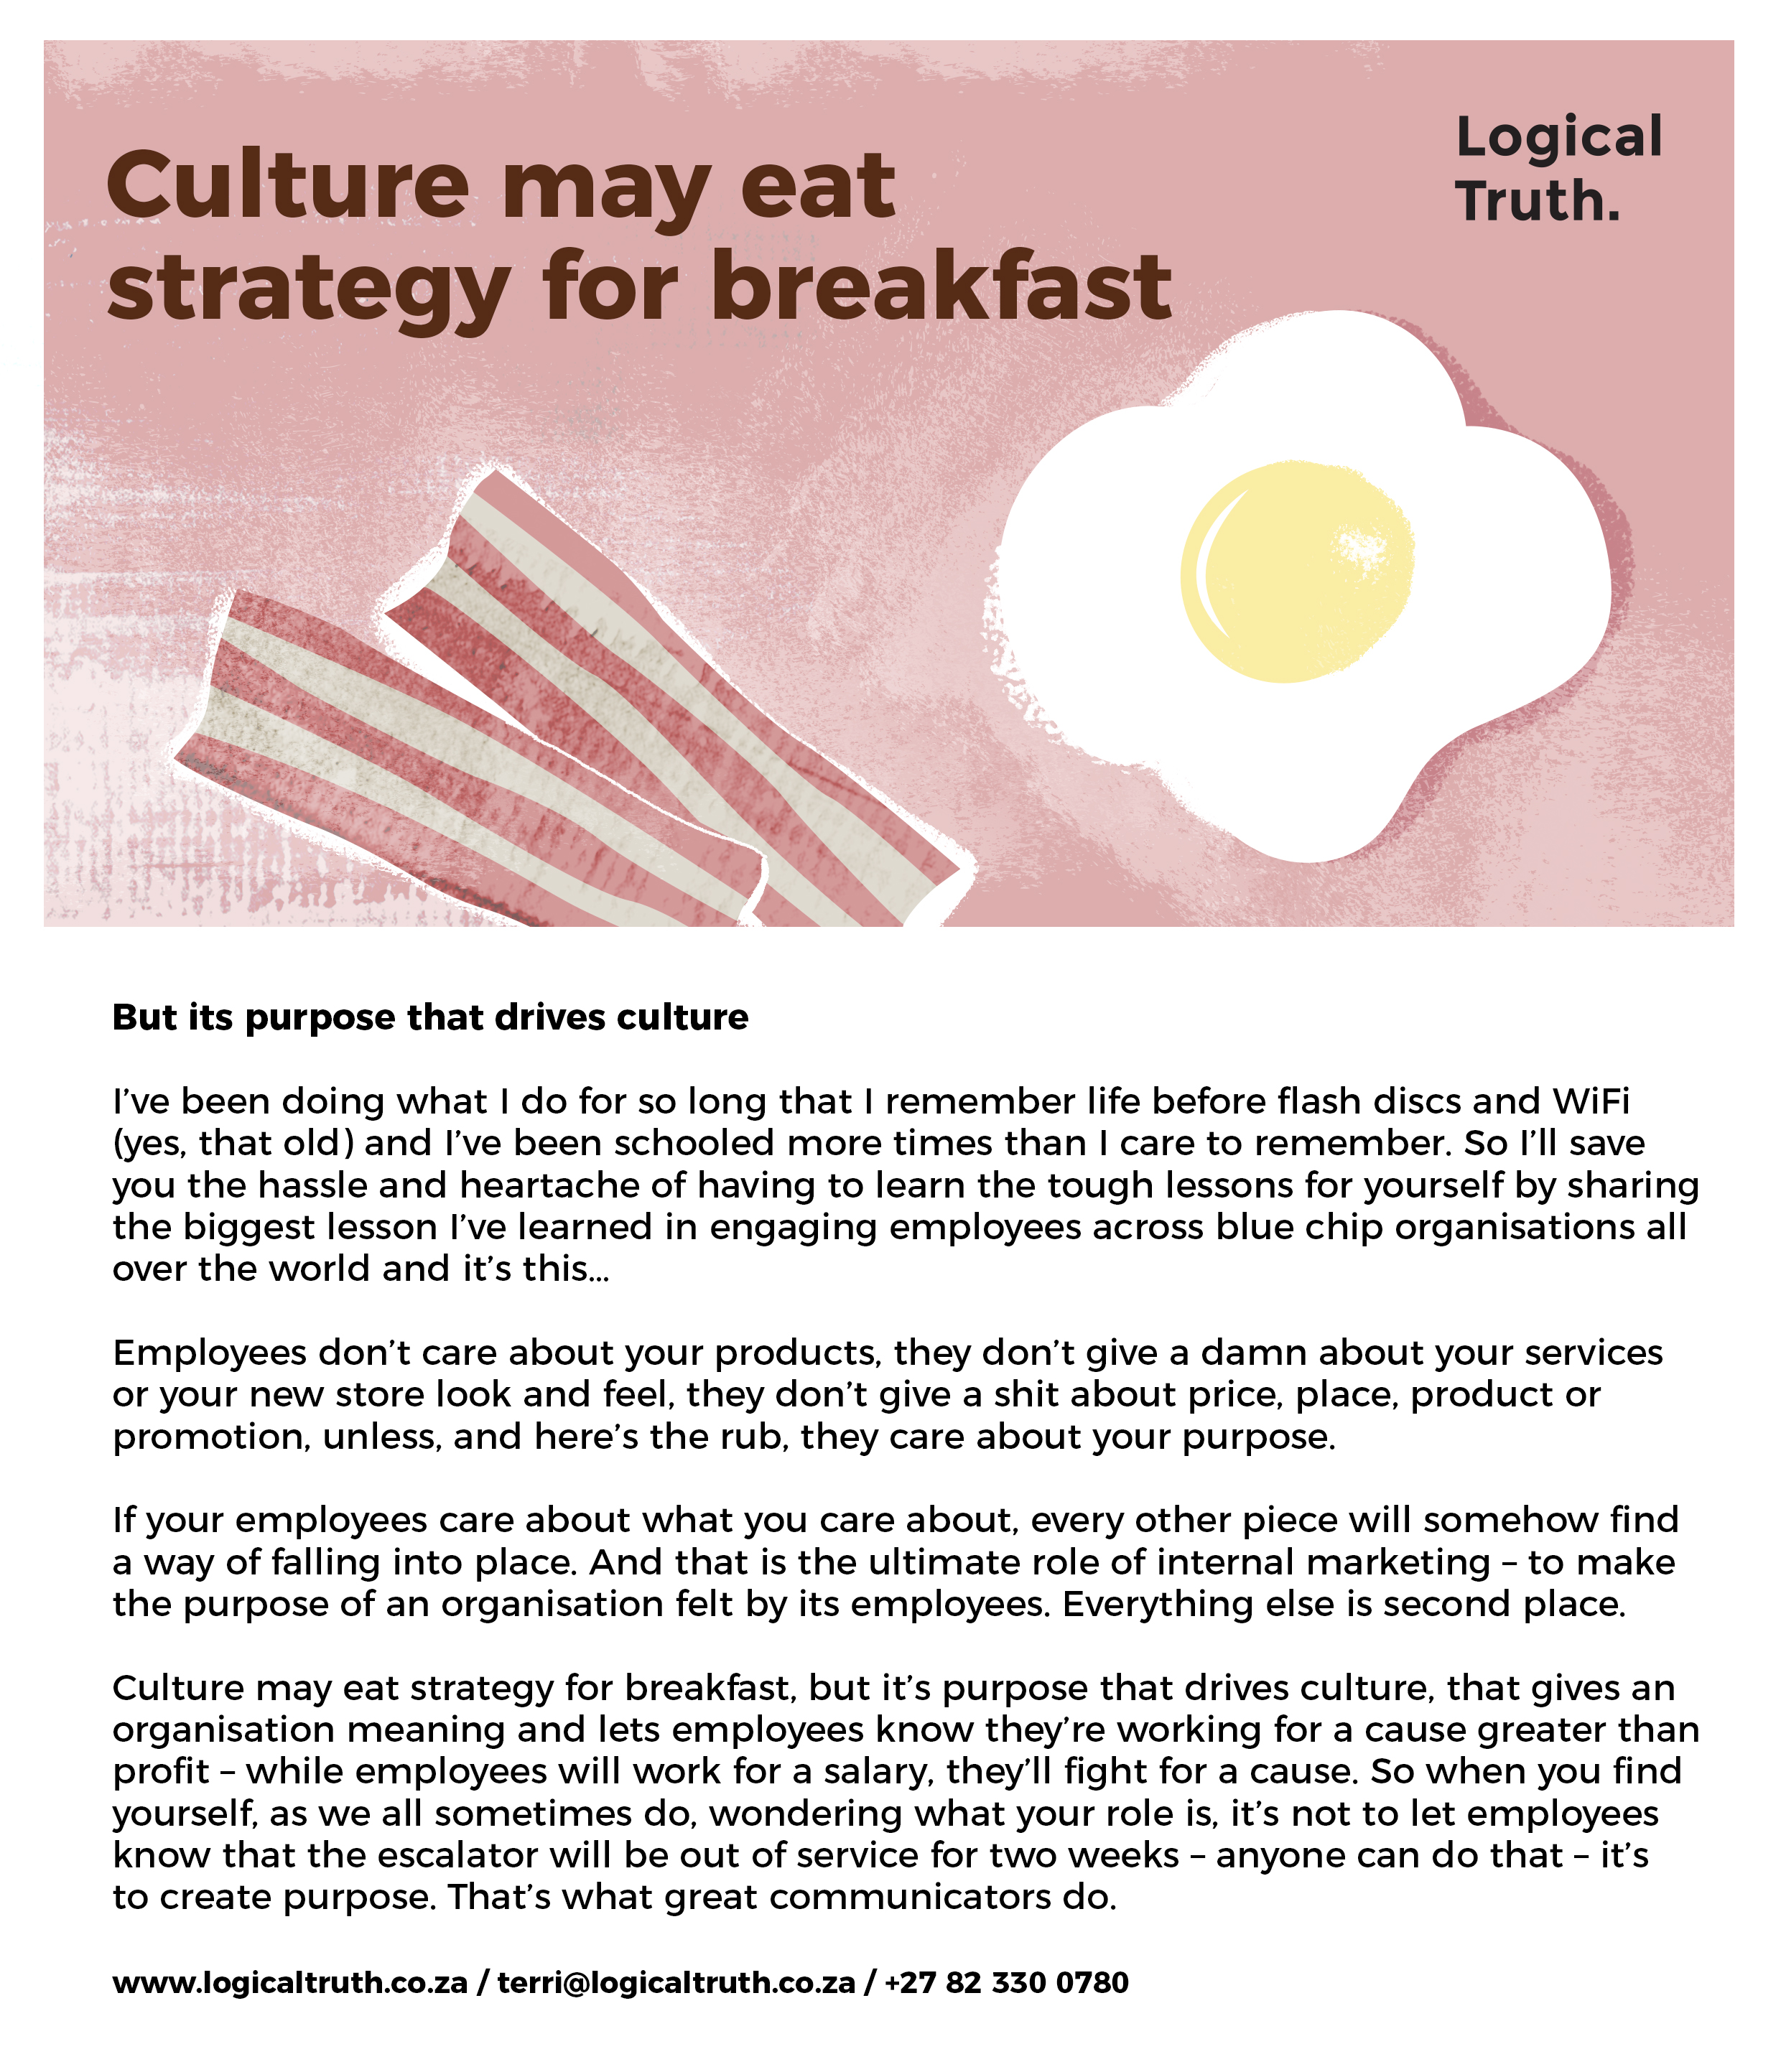 Postcard 3 breakfast - Logical Truth - Culture may eat strategy for breakfast